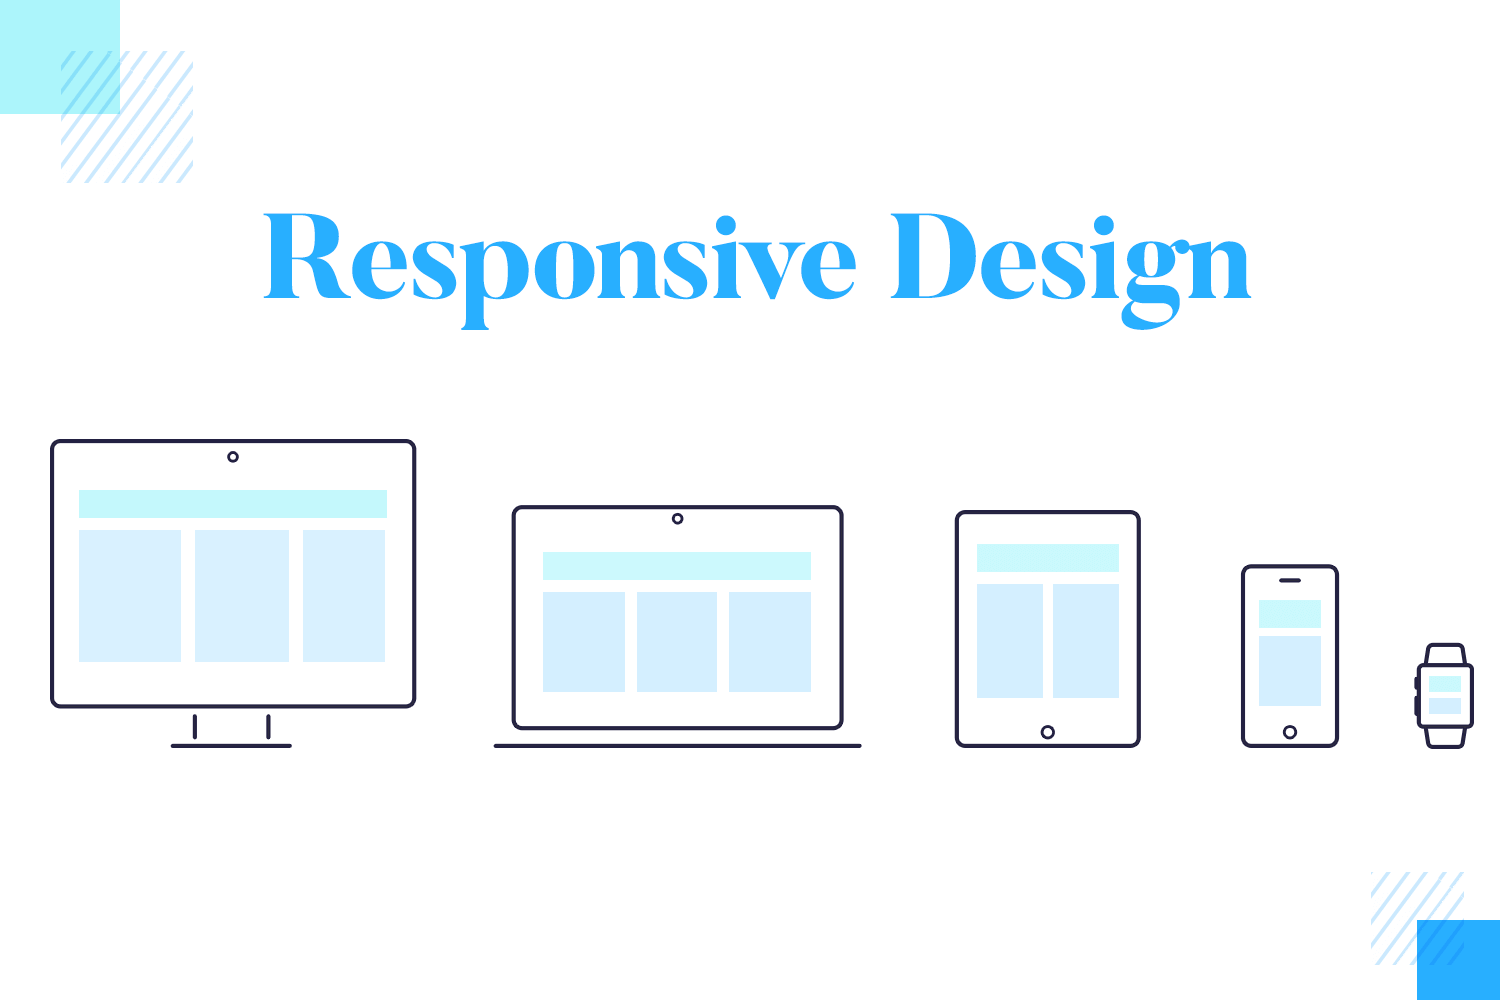 Prototypes should be responsive across a range of devices